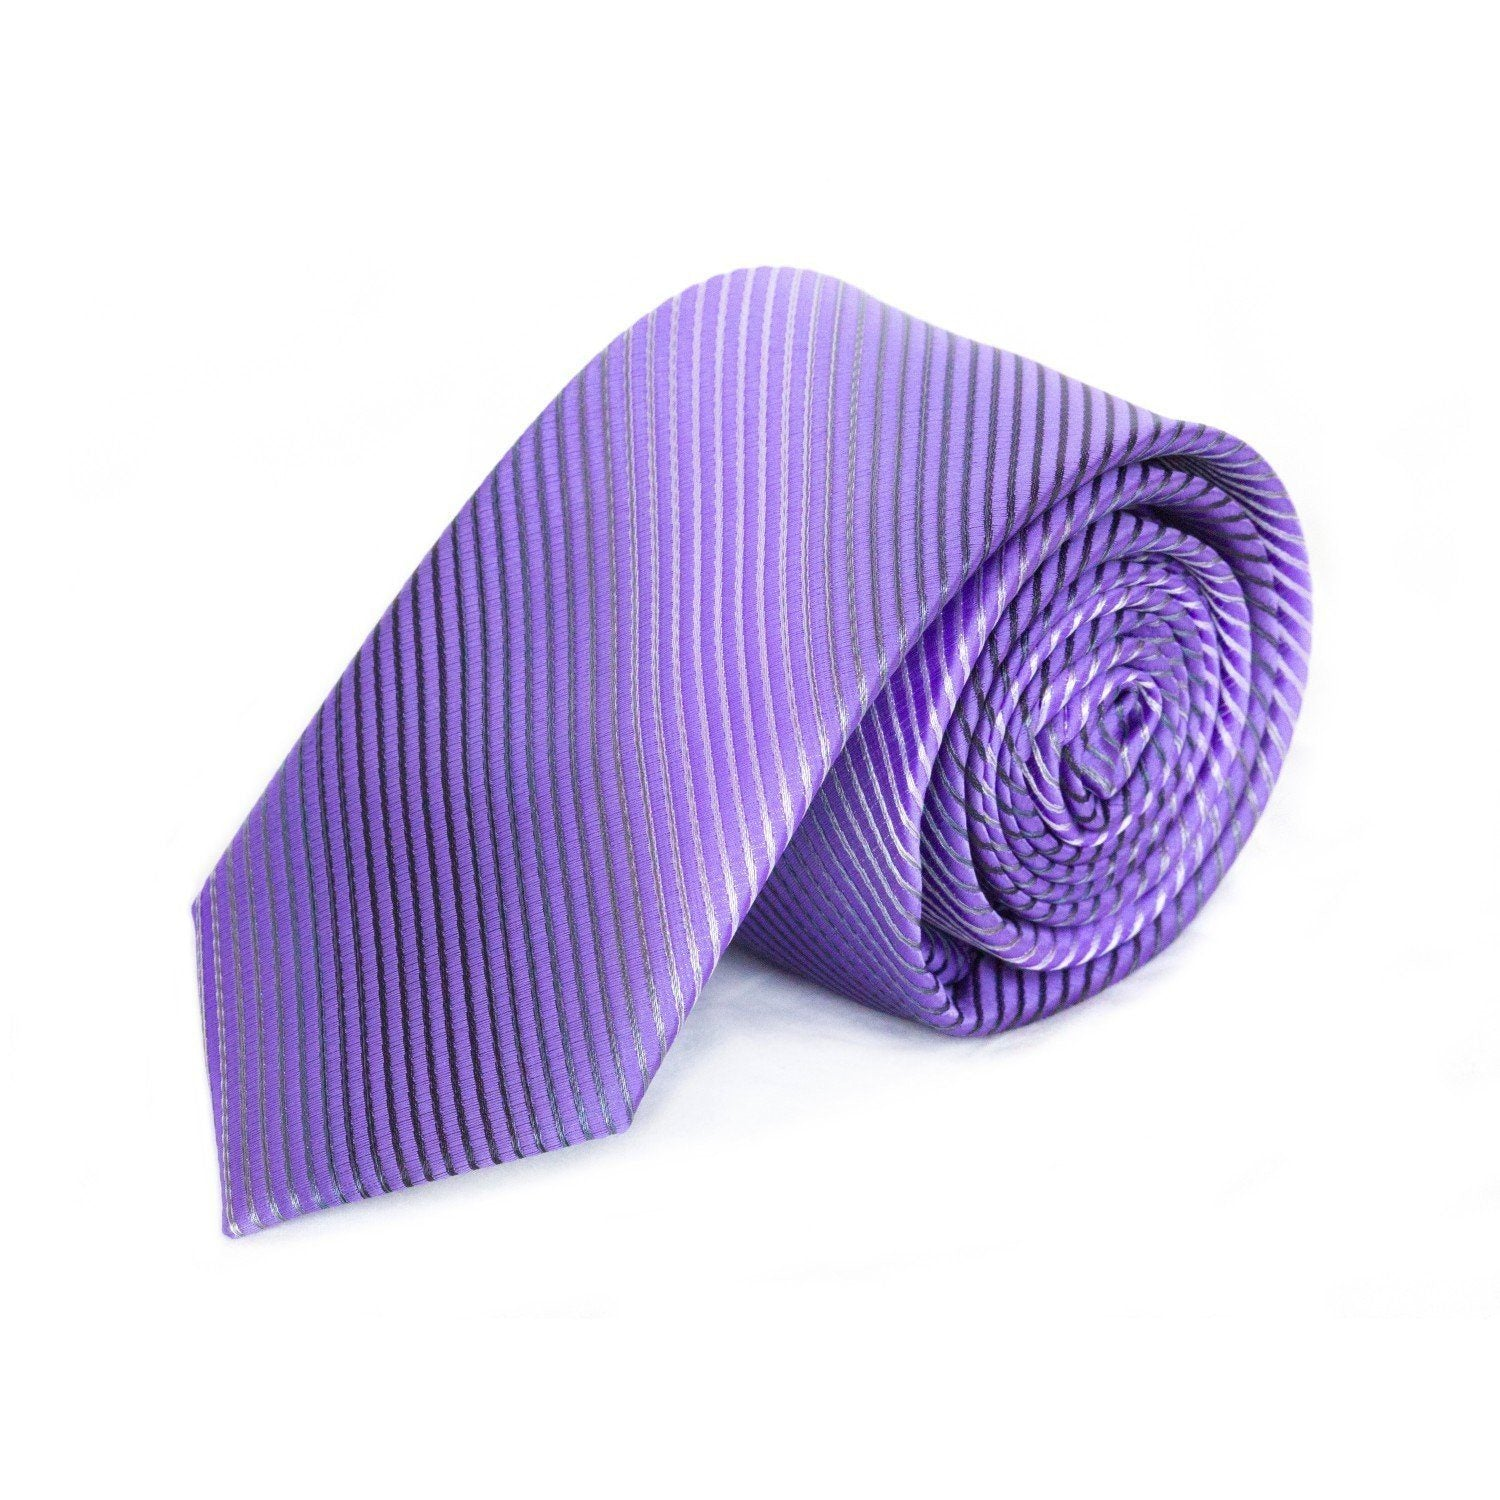 Light Purple Gradient MF Tie, Ties, Cuffed.com.au, TI0060, $25.00